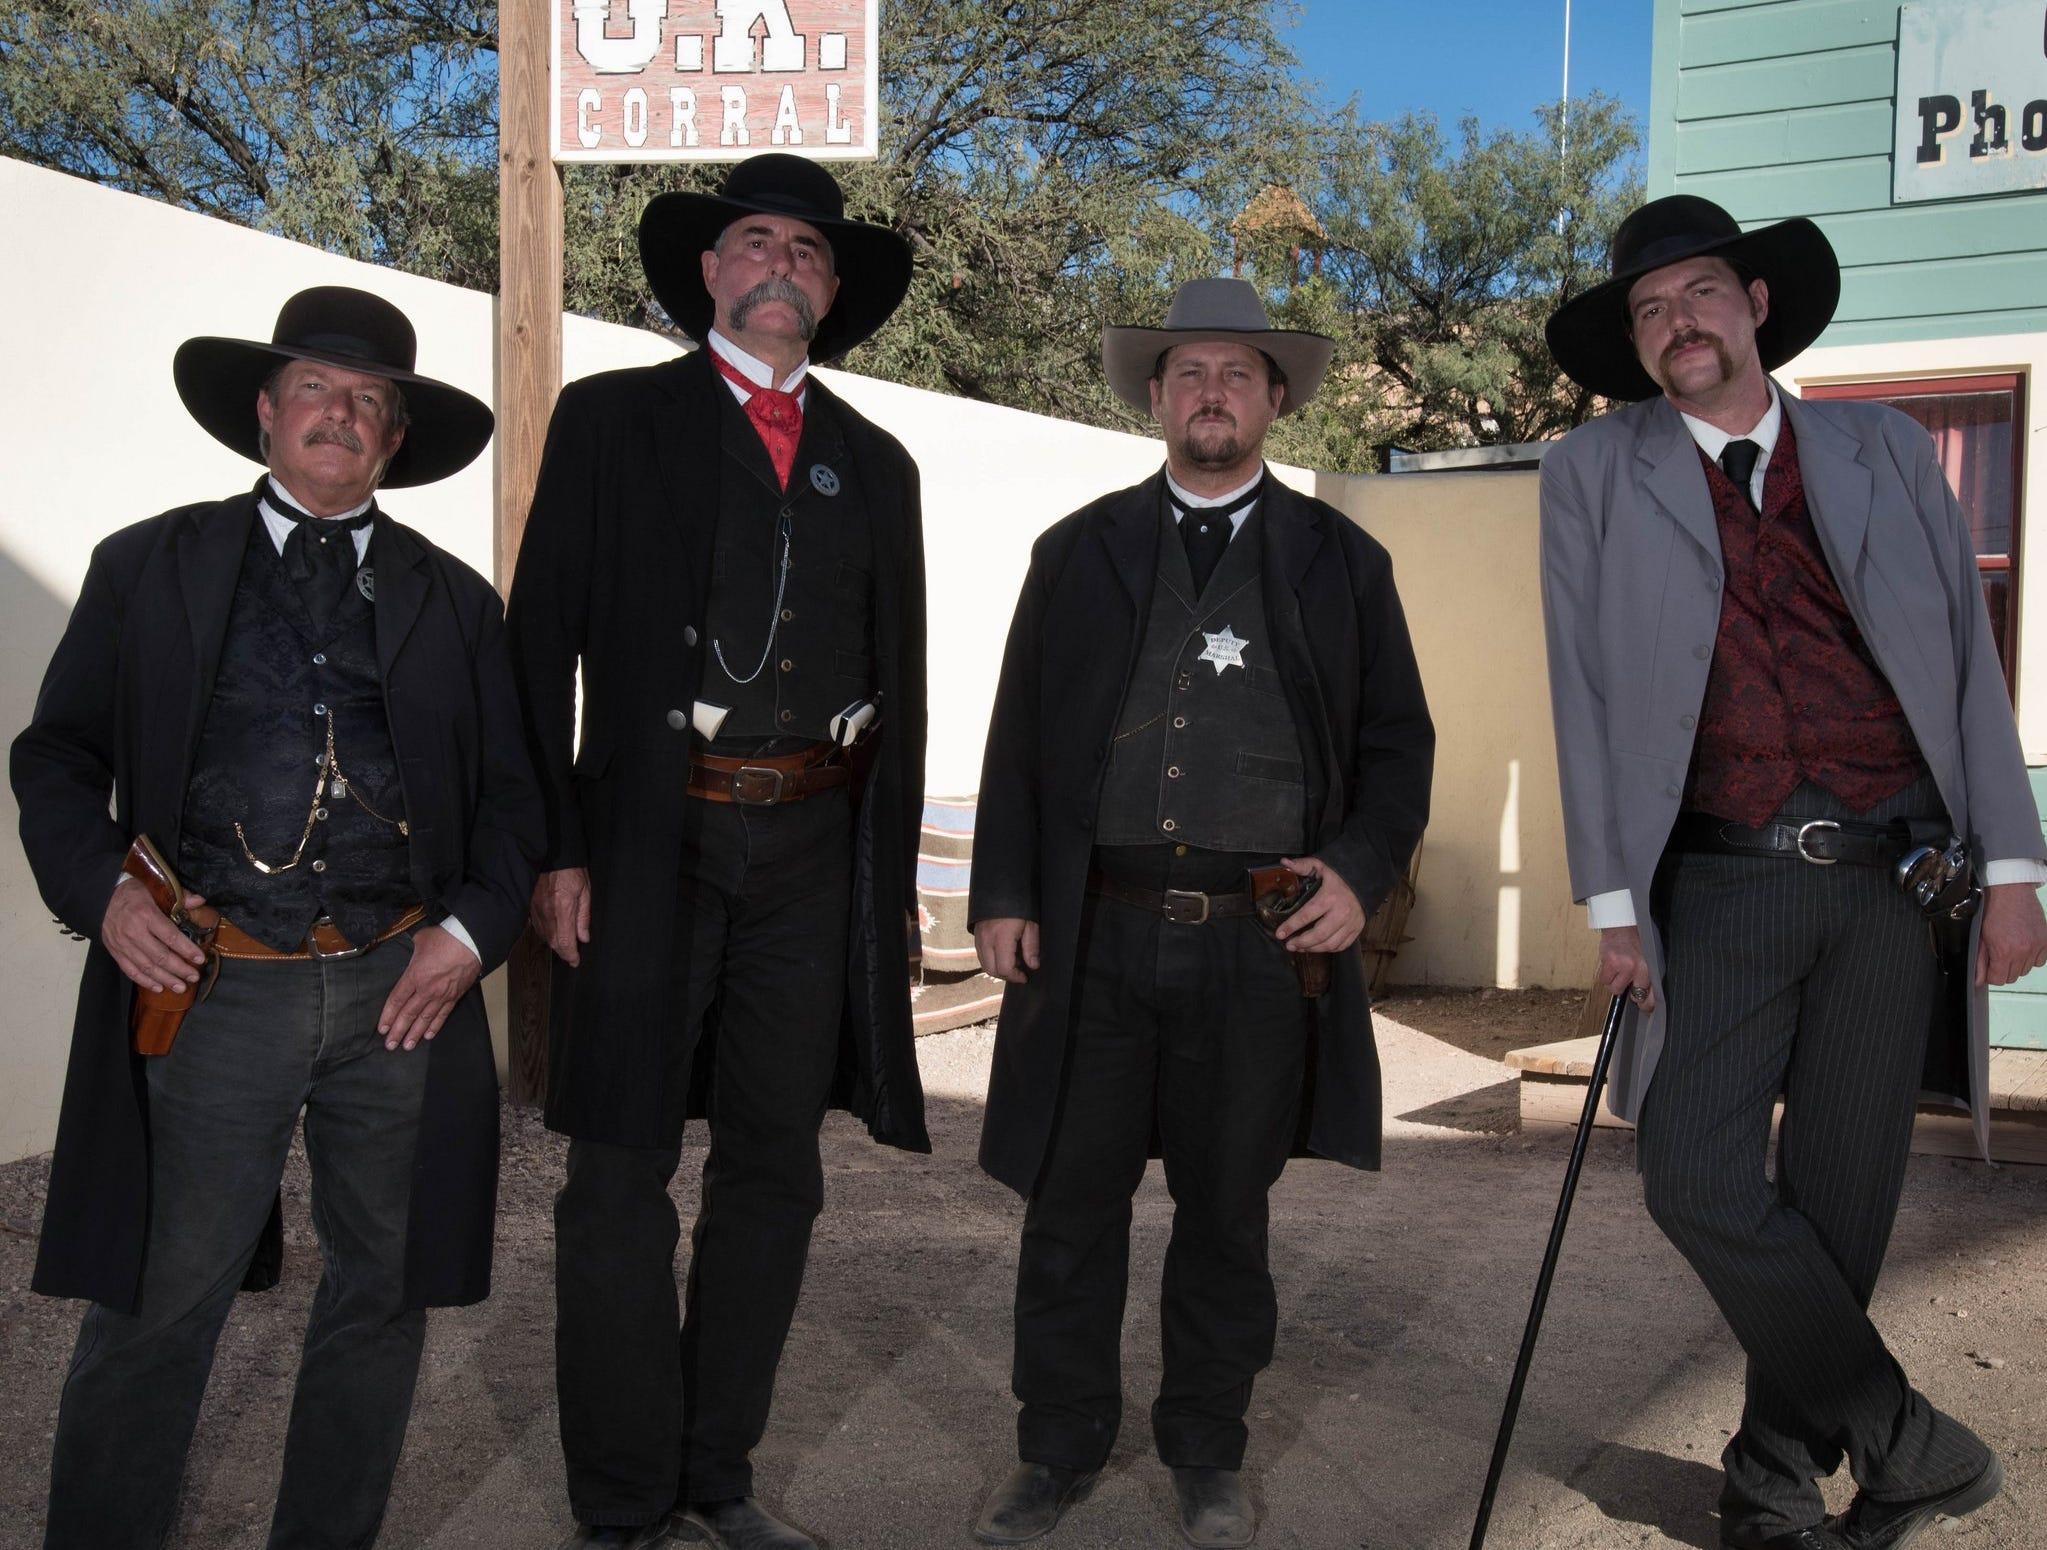 The most famous gunfight of the Old West is re-enacted daily at Tombstone's O.K. Corral.